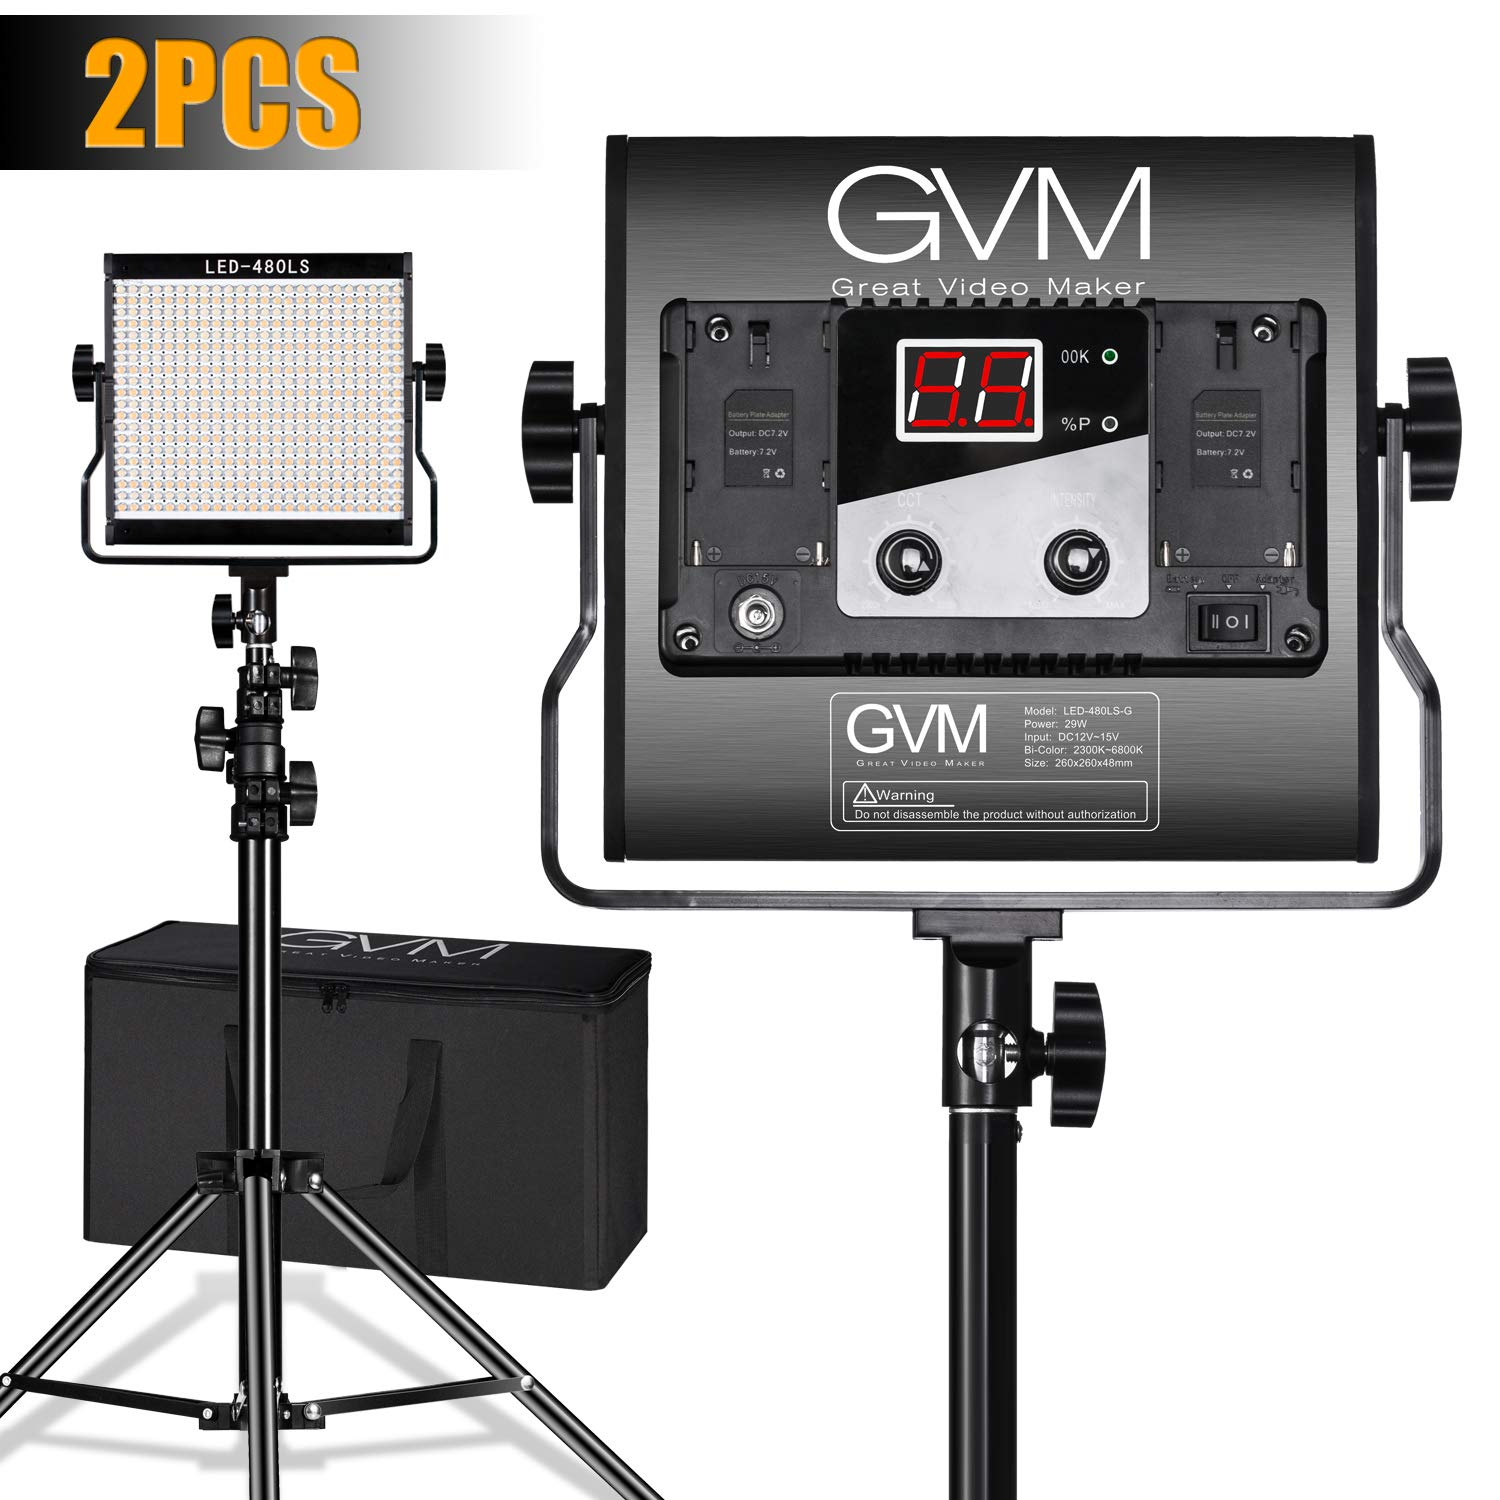 LED Video Lighting Kits,GVM 480LS 2 Pack Video Light with APP Control CRI97+ TLCI97 Bi-Color  10~100% for Video Photography, Led Video Light Panel +Barndoor by GVM Great Video Maker